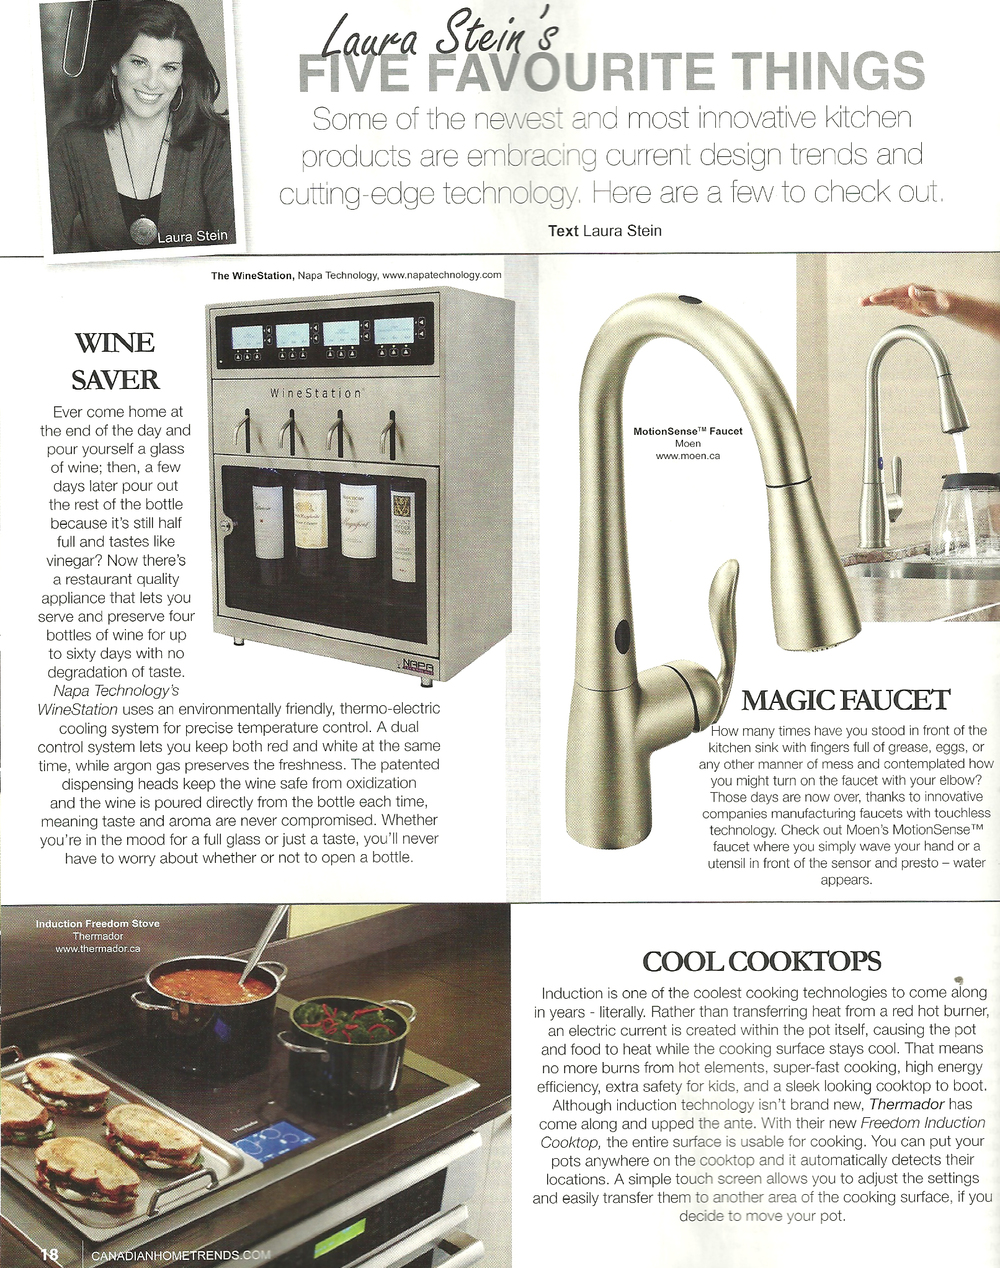 Canadian Home Trends Autumn 2013 5 Fav Things Page 1.jpg